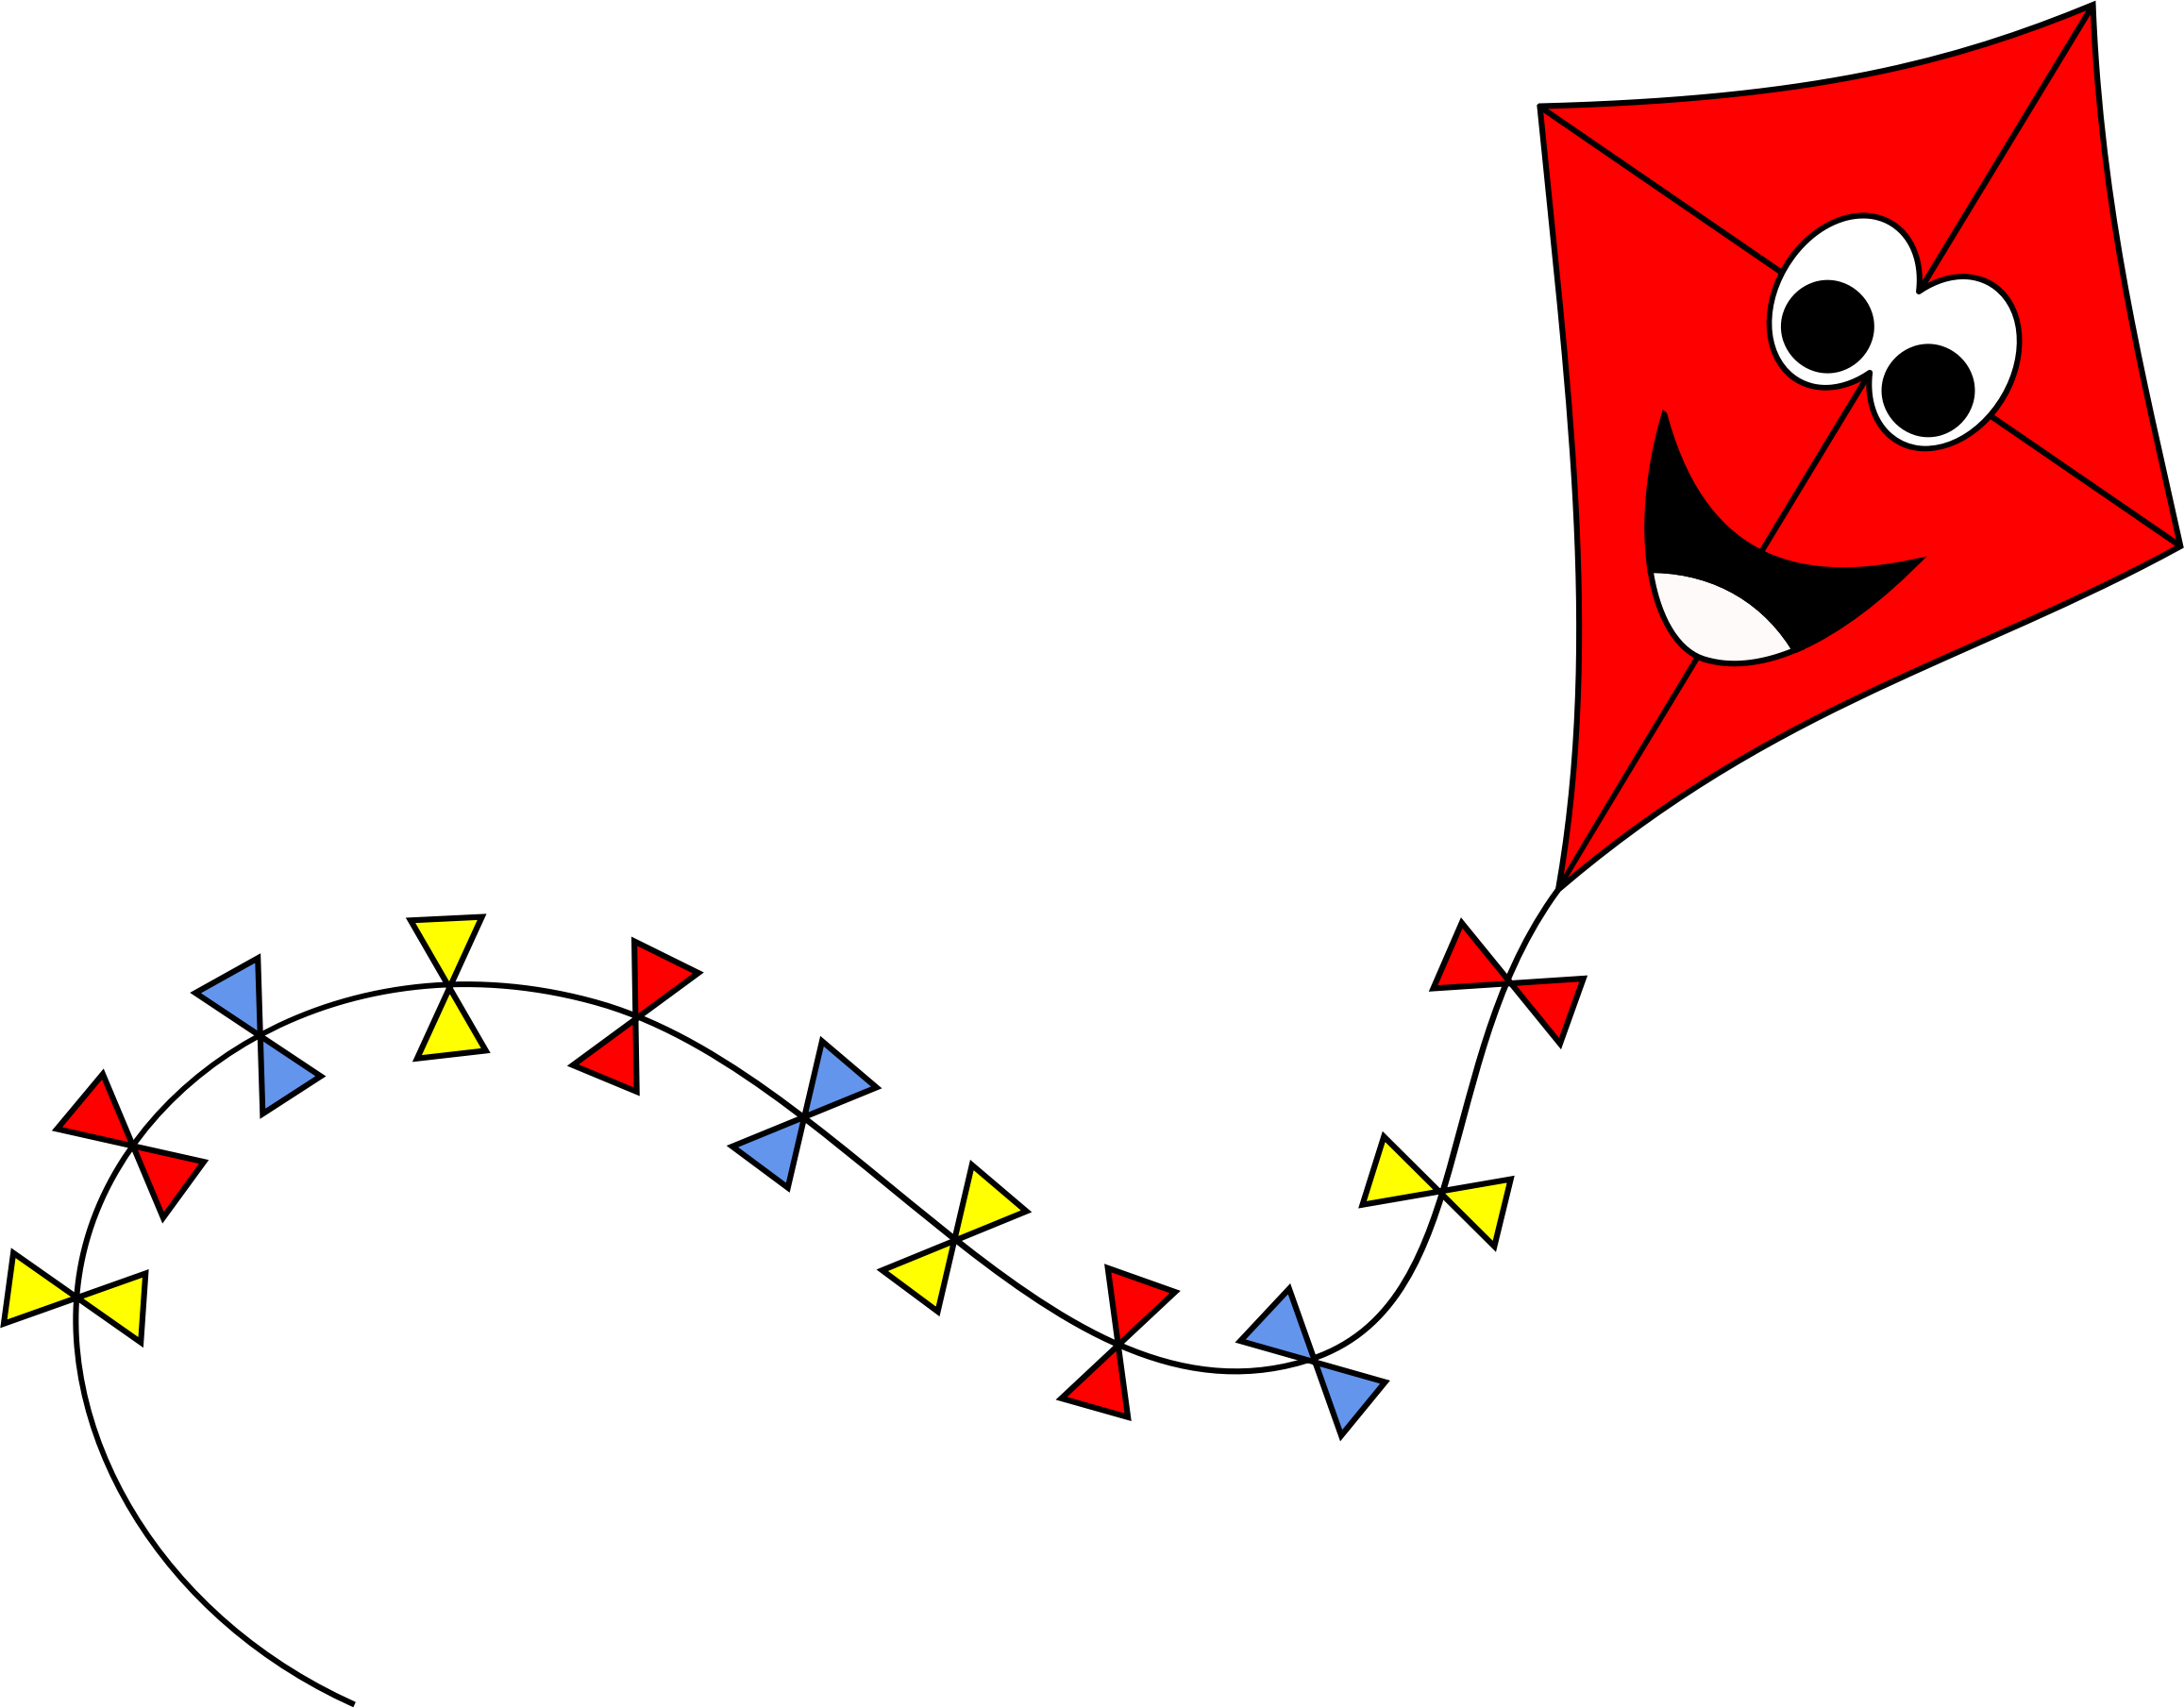 clipart images of kite - photo #36